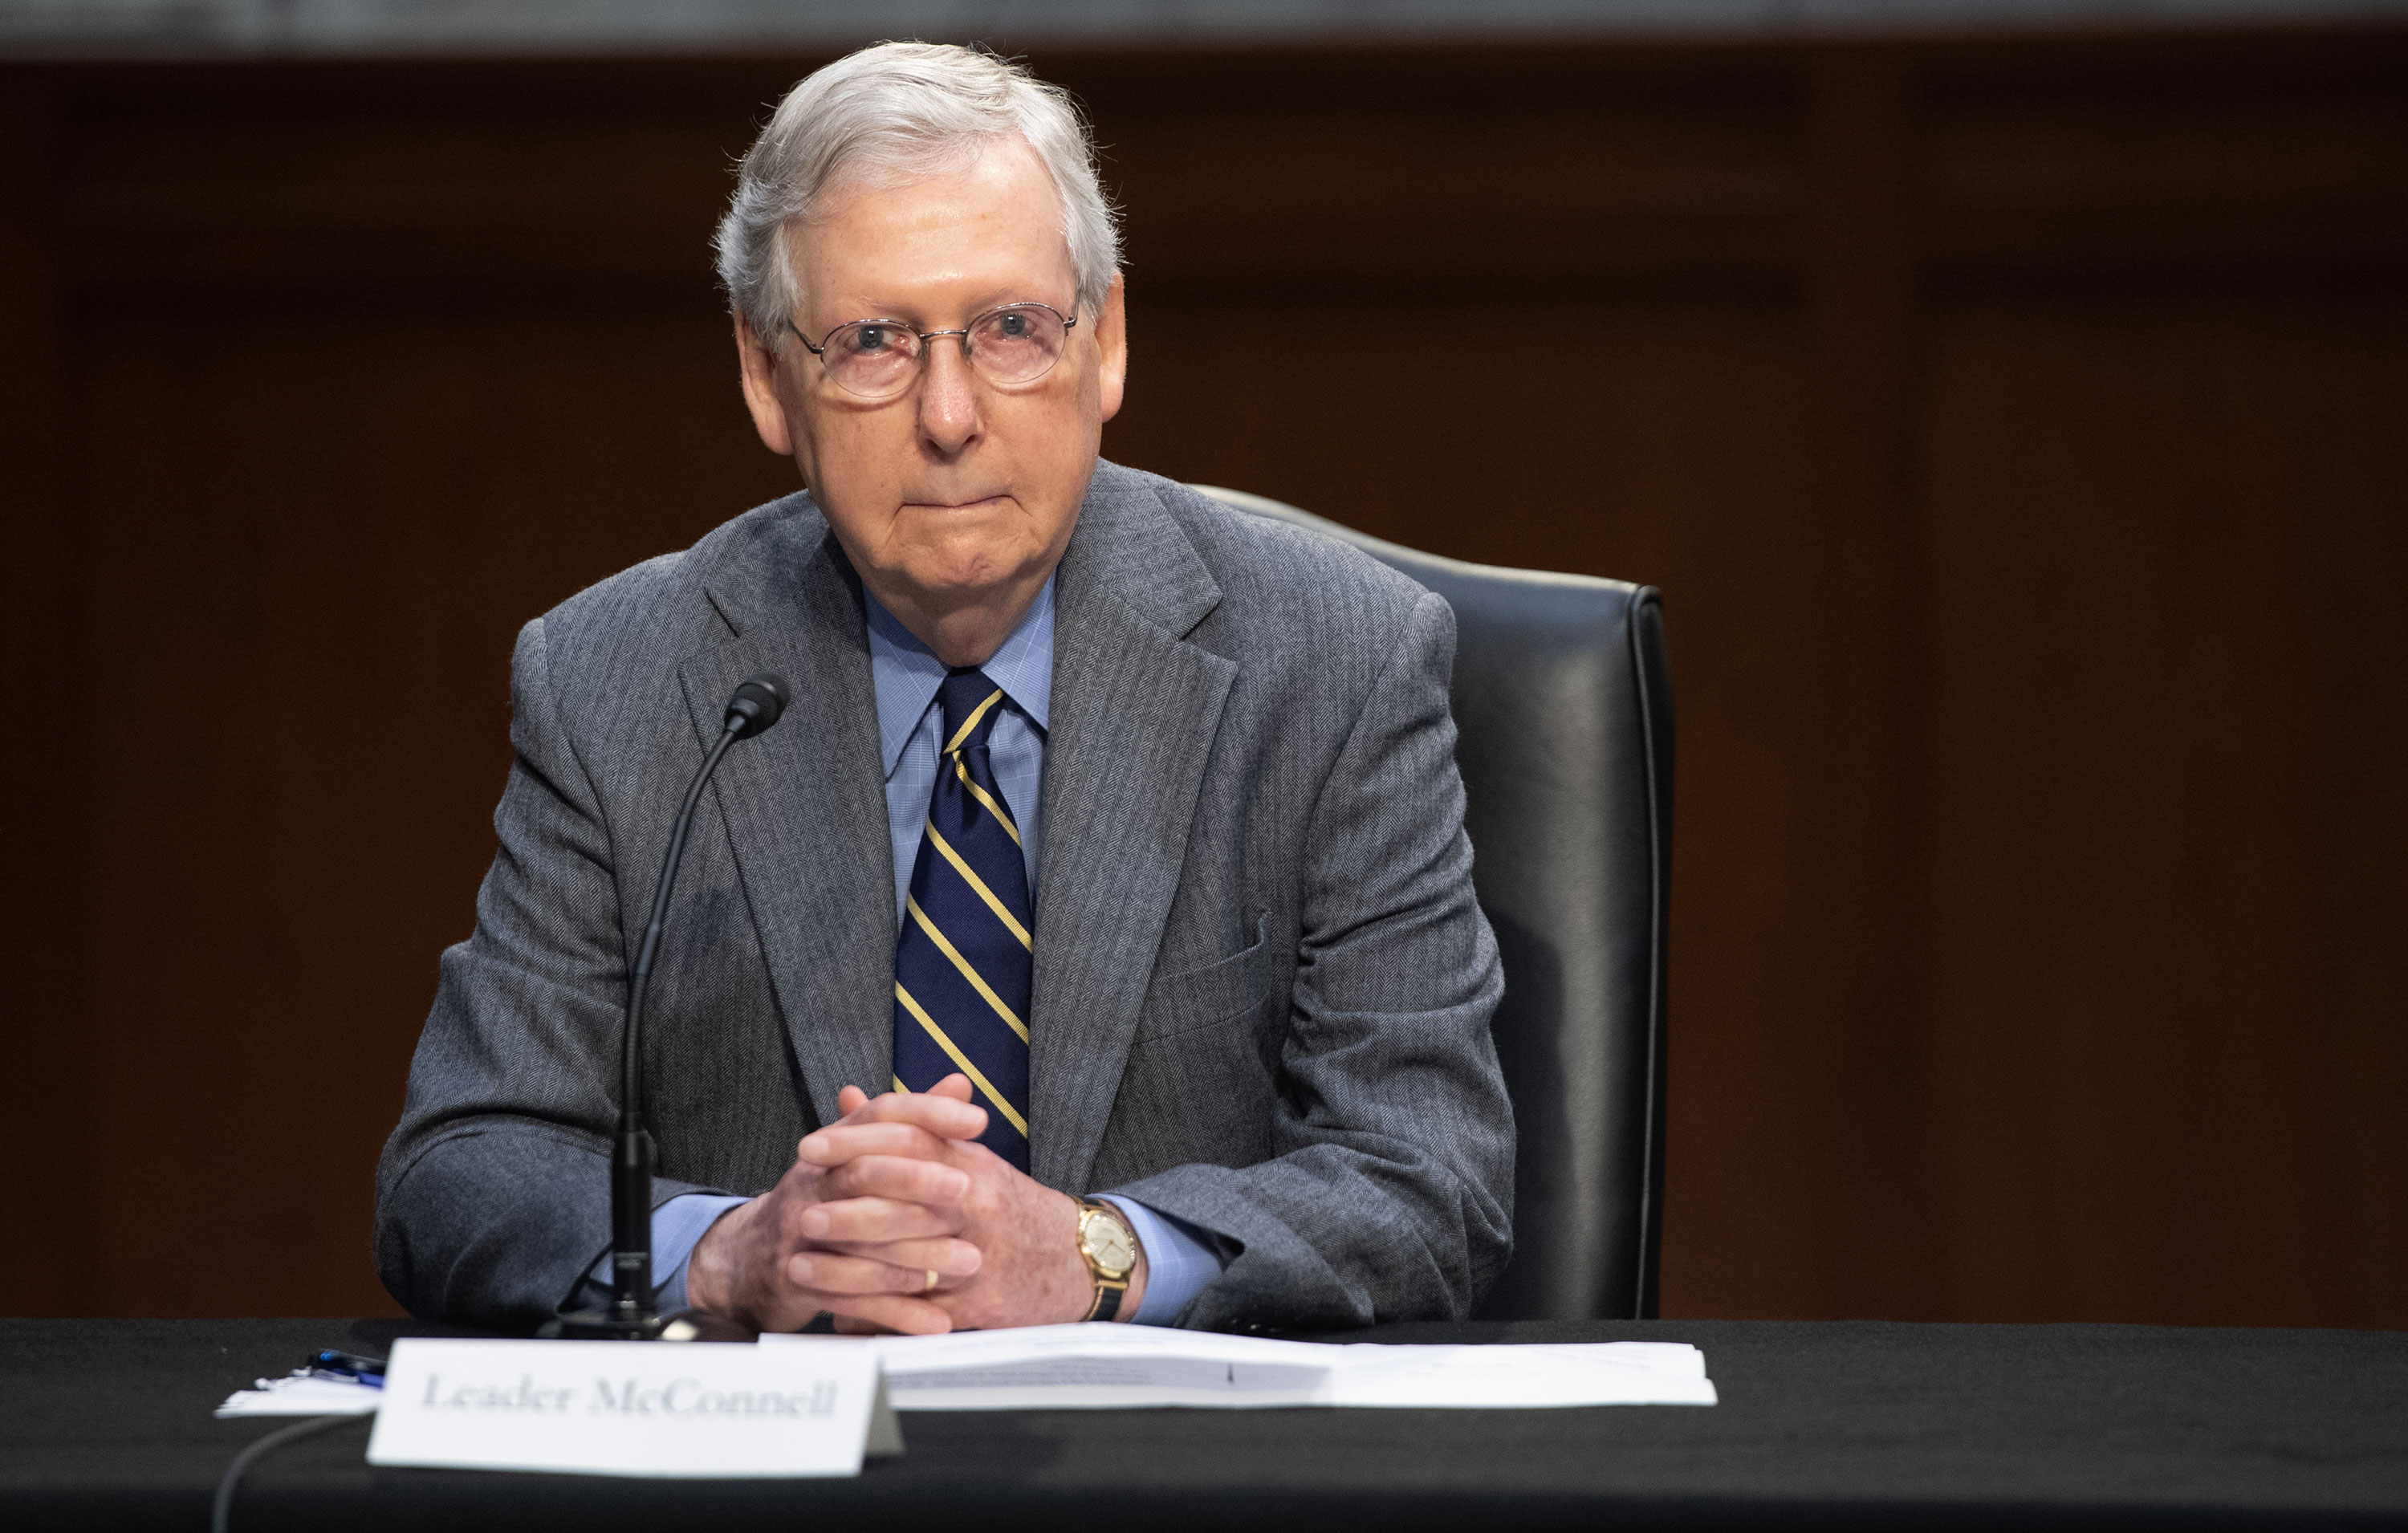 US Senate Majority Leader Mitch McConnell attends a meeting to discuss a potential economic bill in response to the coronavirus in Washington on March 20.